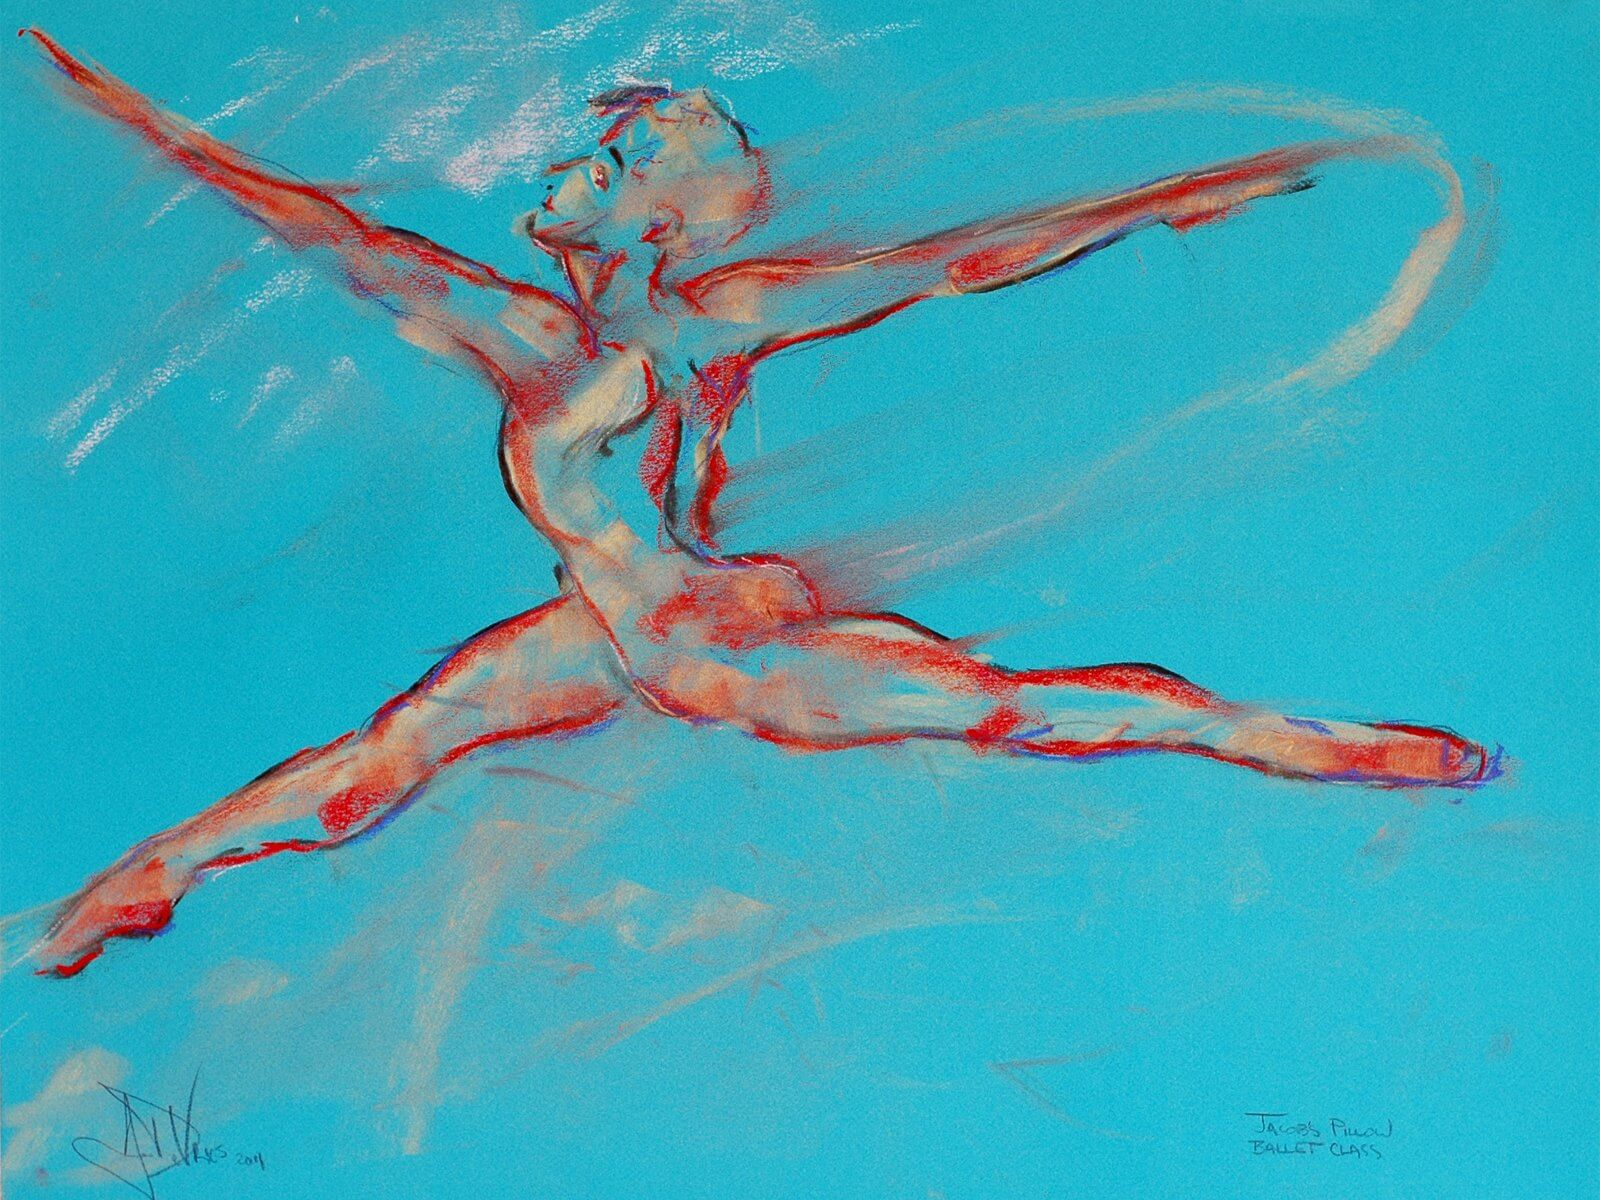 Jacob's Pillow, ballet class is an original pastel painting of a dancerby Andrew DeVries, done from a sketch. It is on acid free paper. Copyright 2011